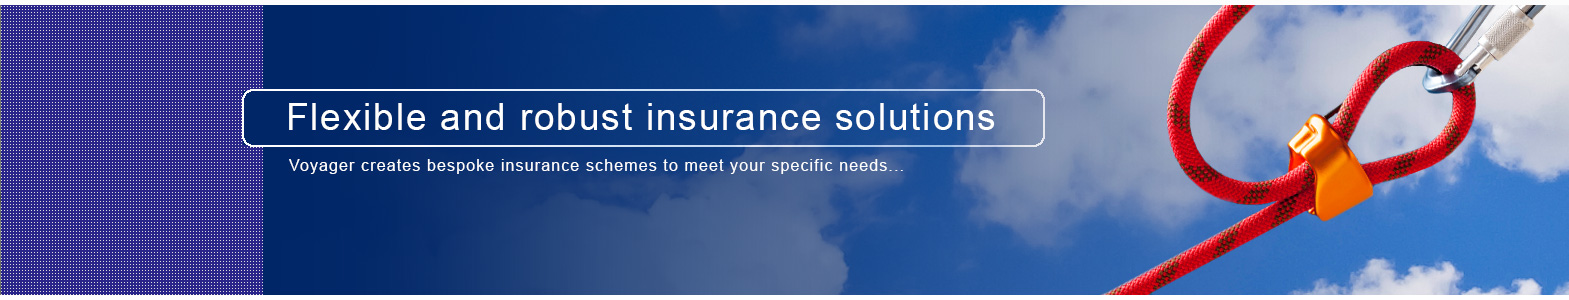 Flexible-and-robust-insurance-solutions3